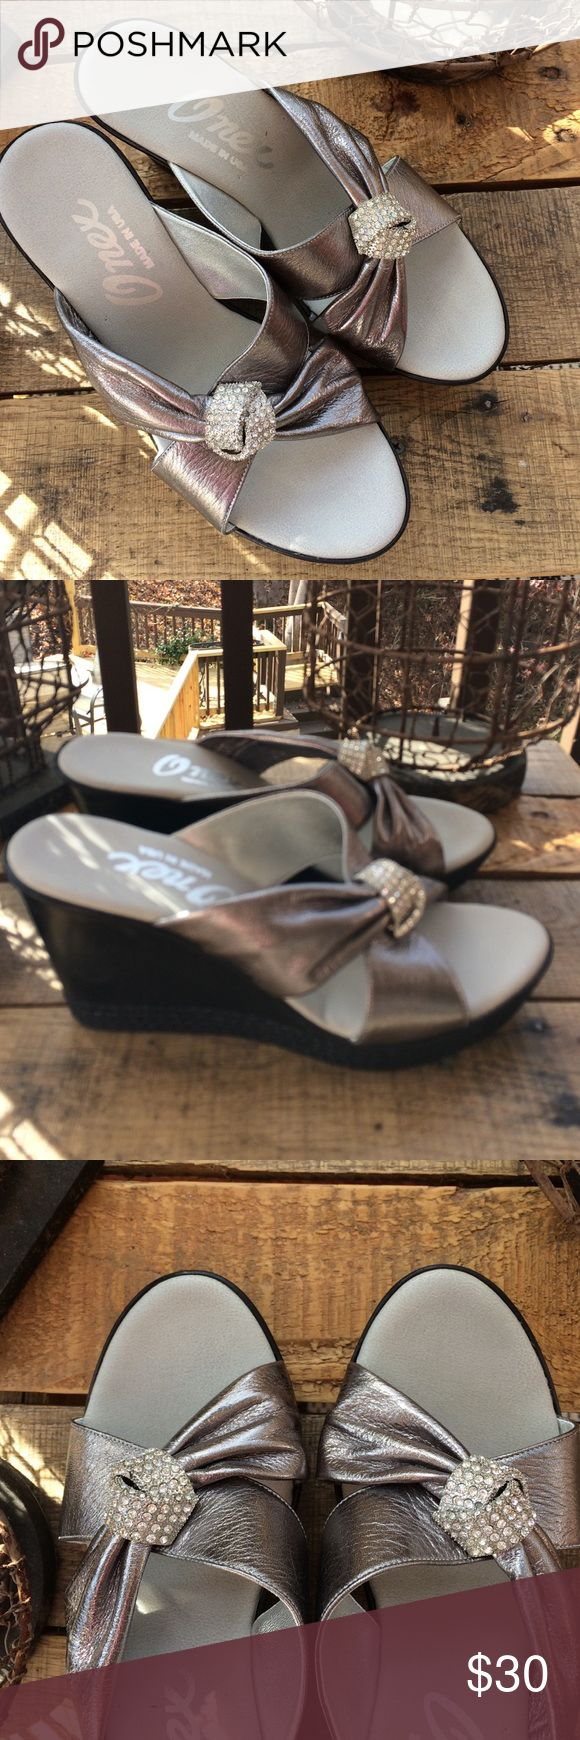 """ONEX silver wedges with crystal accents.  New 7 ONEX silver slide on wedges with crystal """"ties"""" on top.  New, never worn.  Size 7. Perfect condition! ONEX Shoes Wedges"""